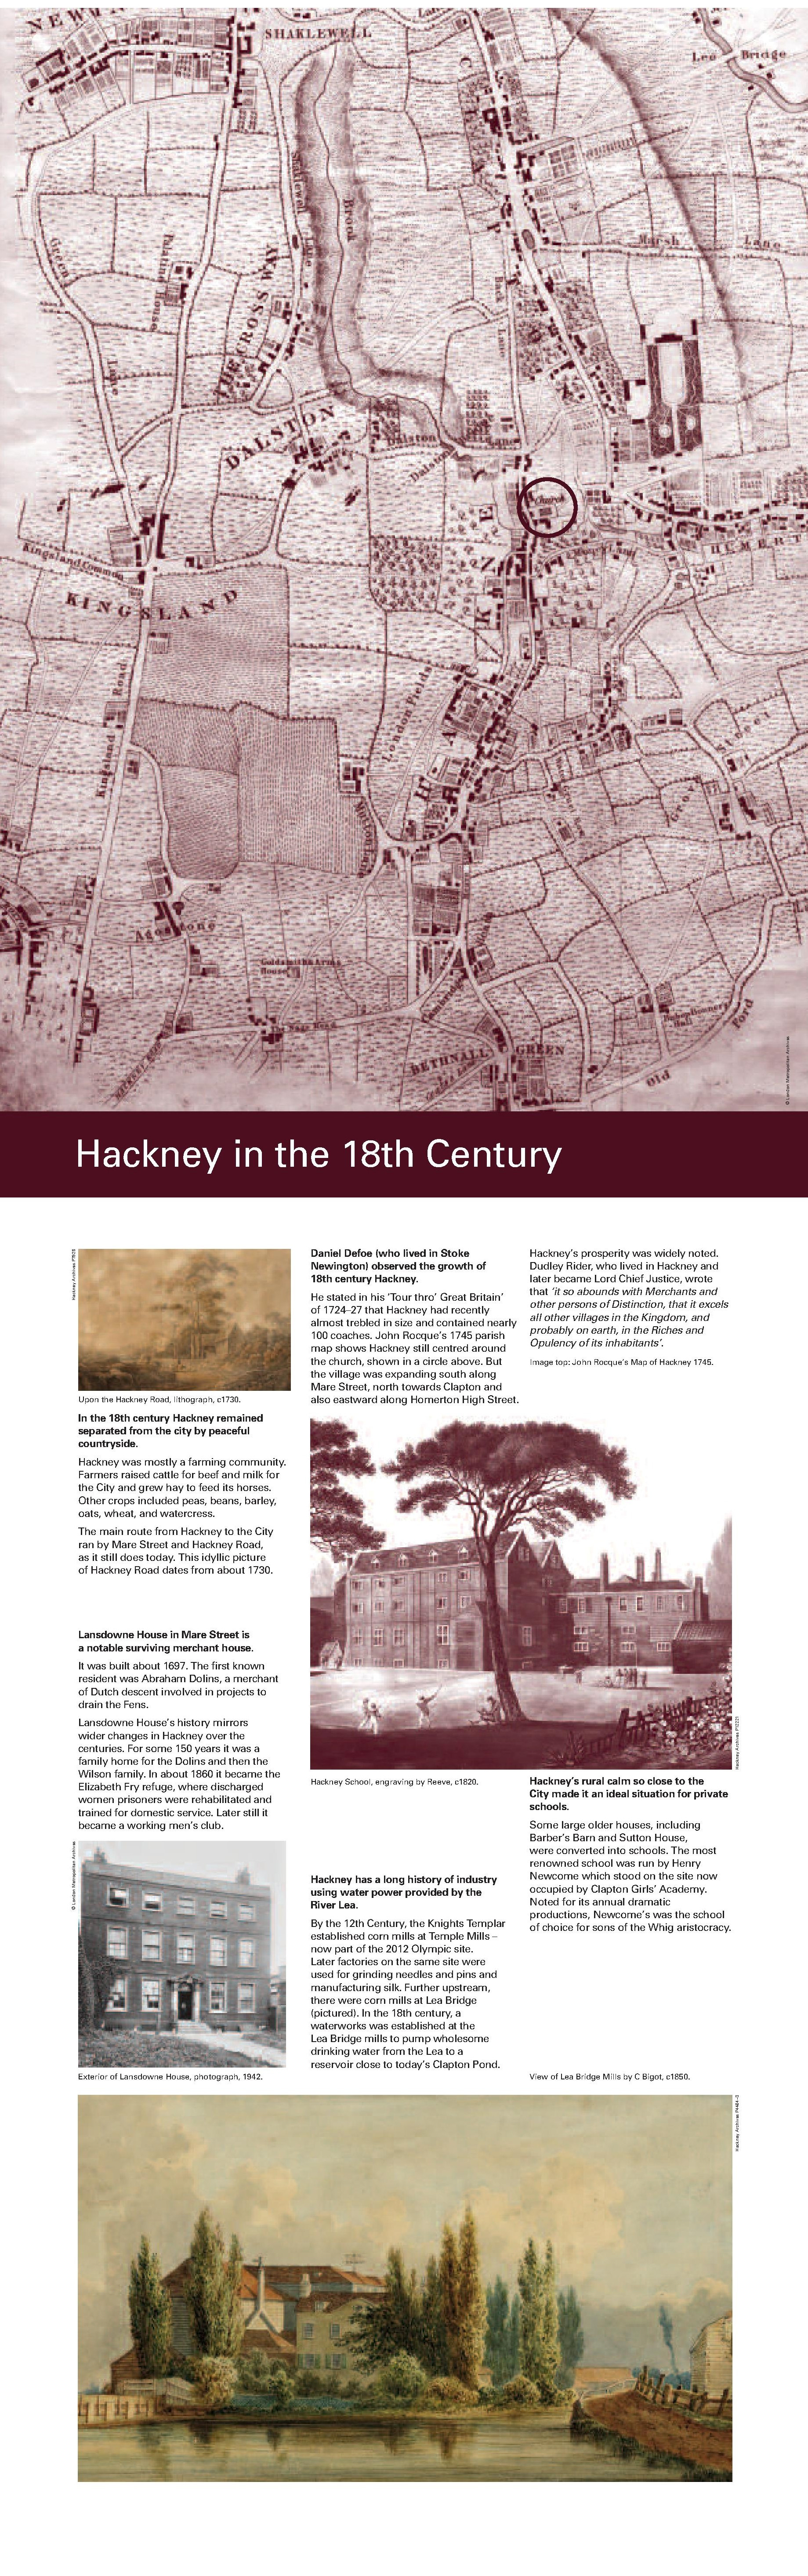 4 HACKNEY THROUGH THE AGES.